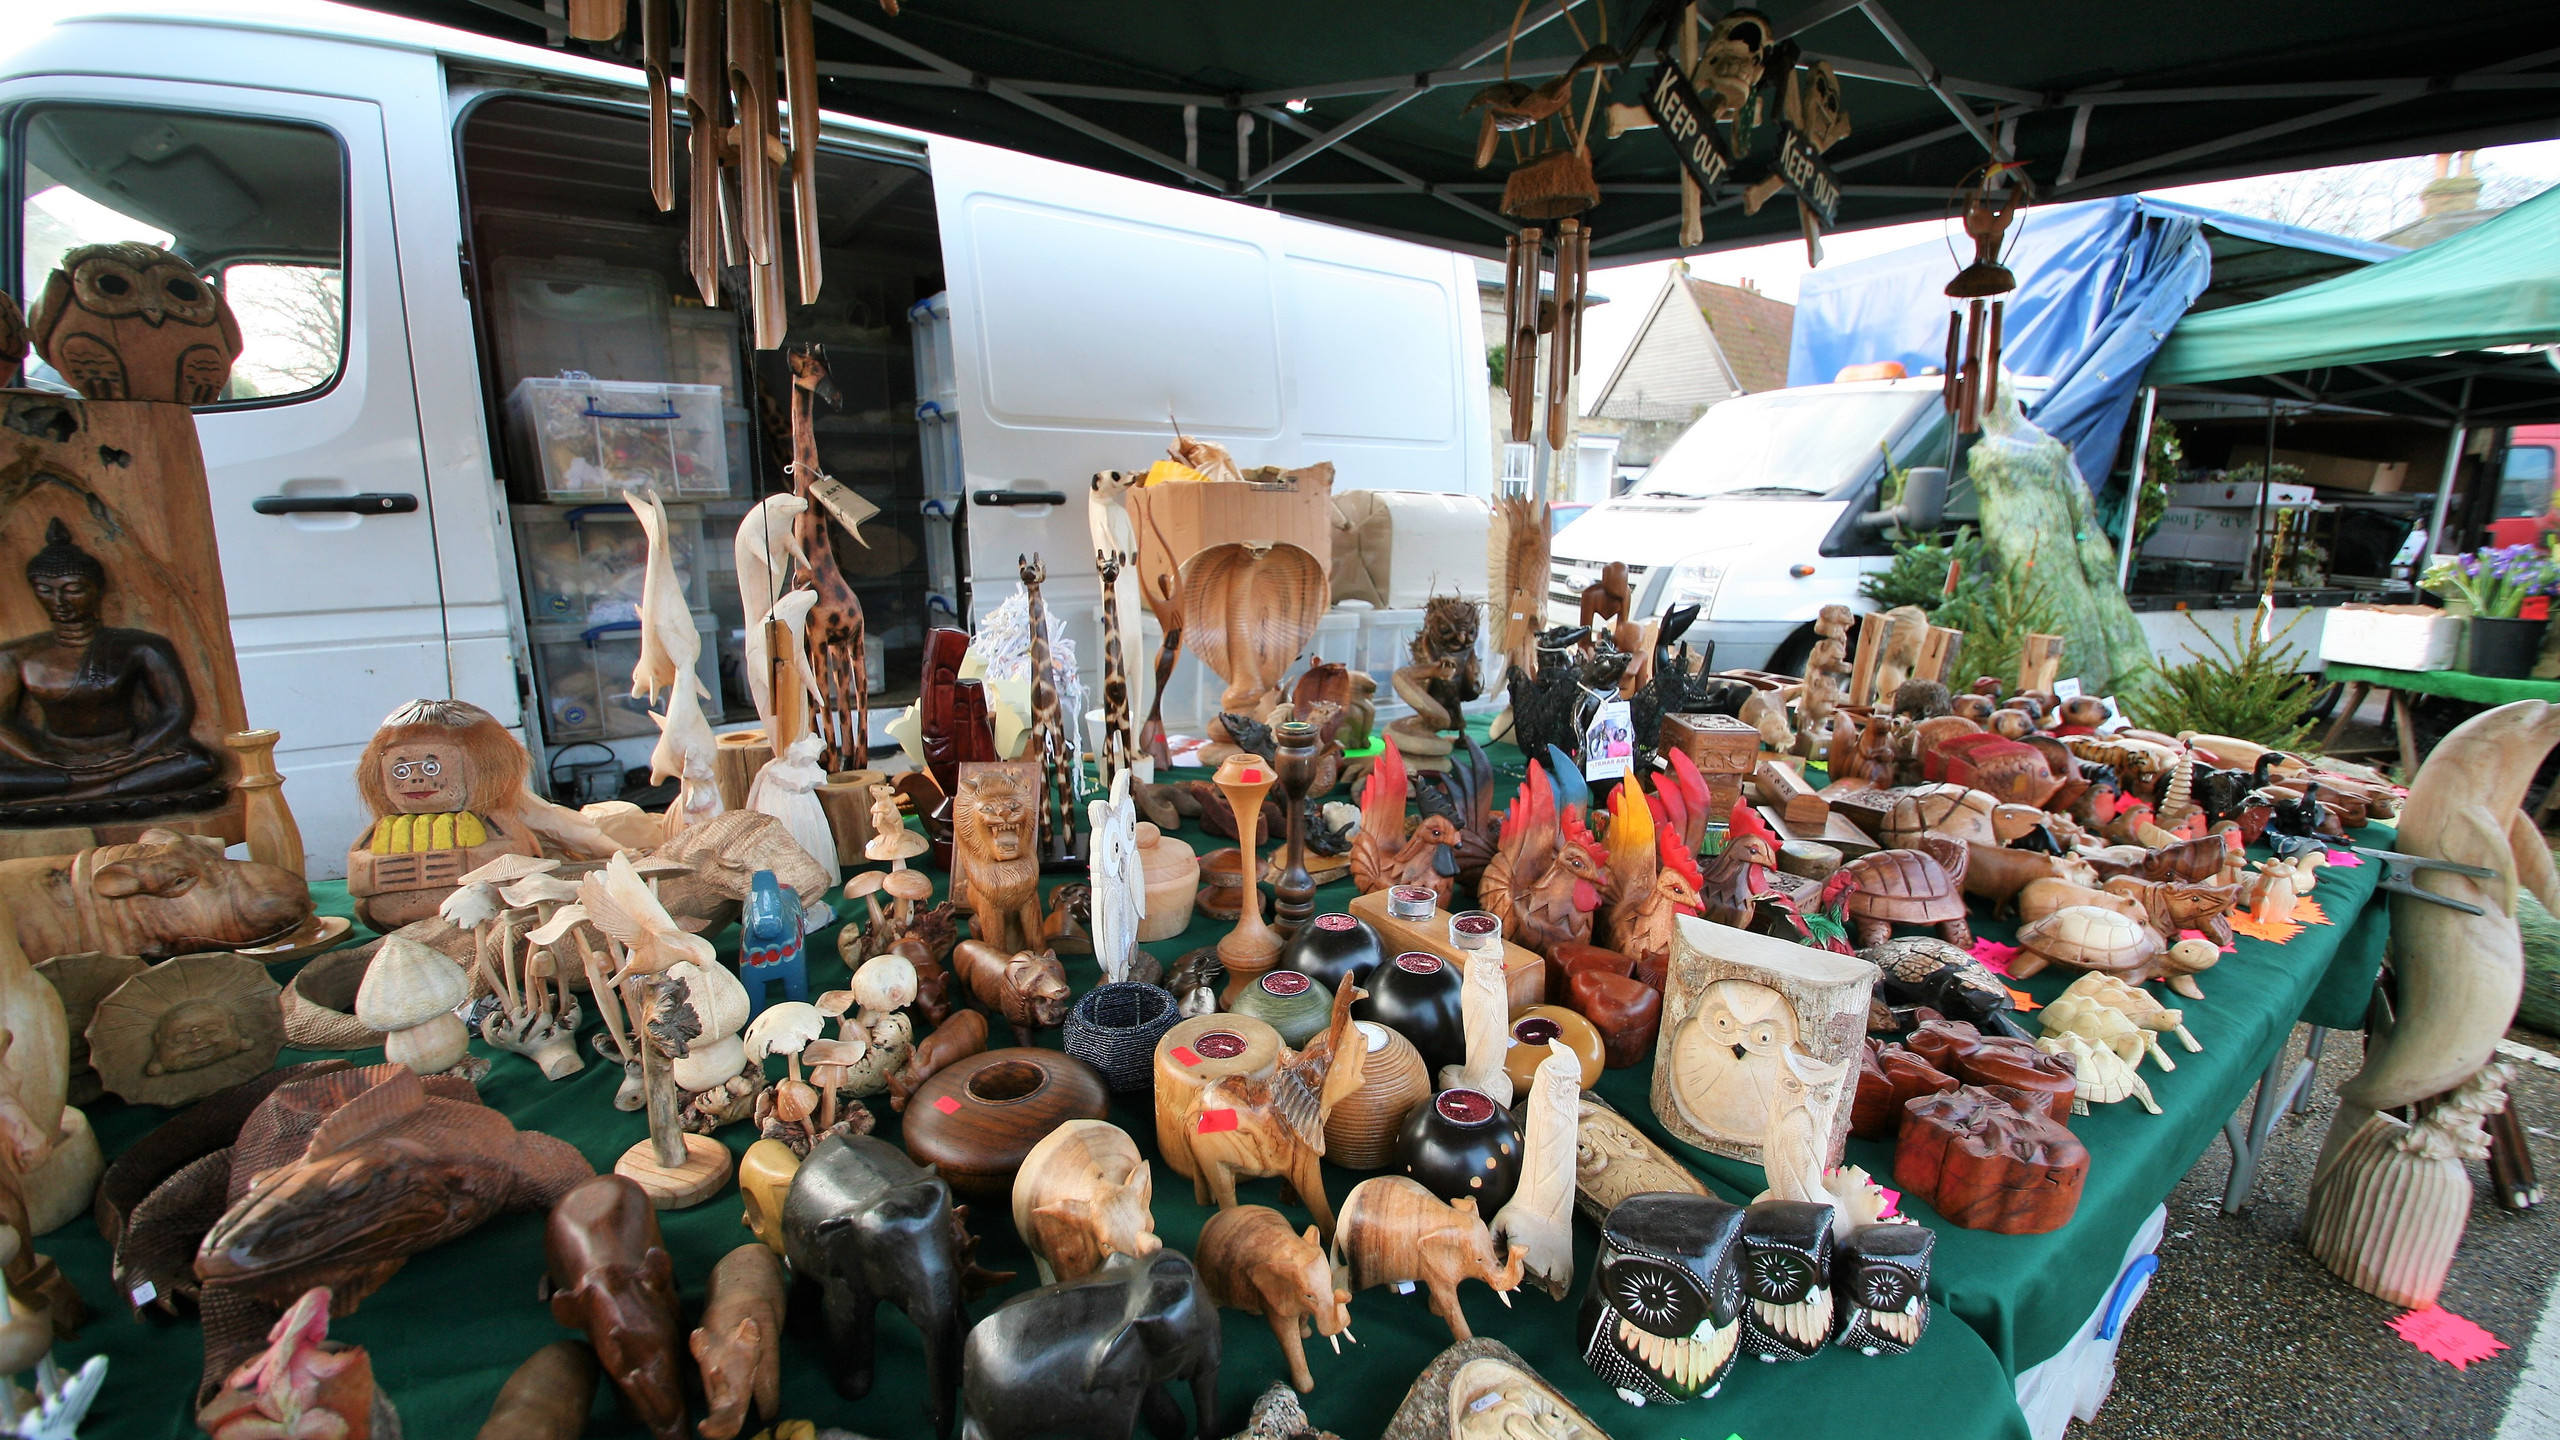 Stall of wooden crafts